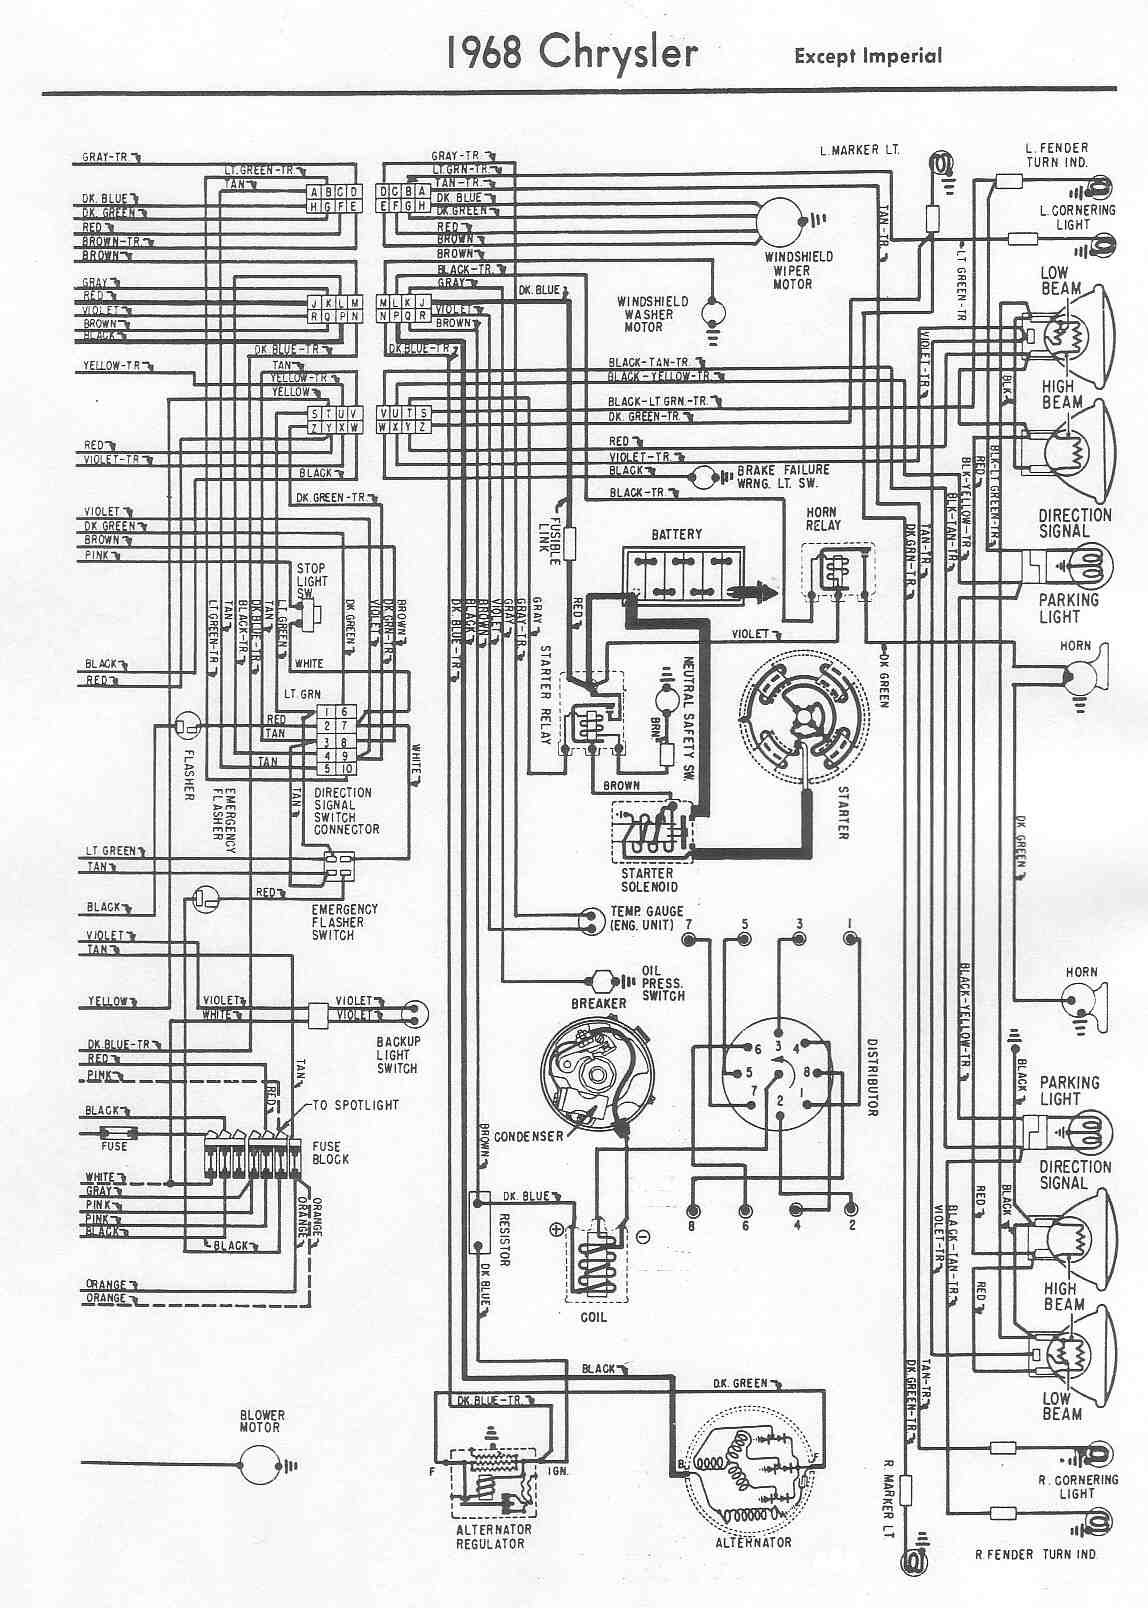 hight resolution of 68 dodge neutral safety switch wiring schematic wiring diagram68 dodge neutral safety switch wiring wiring diagram